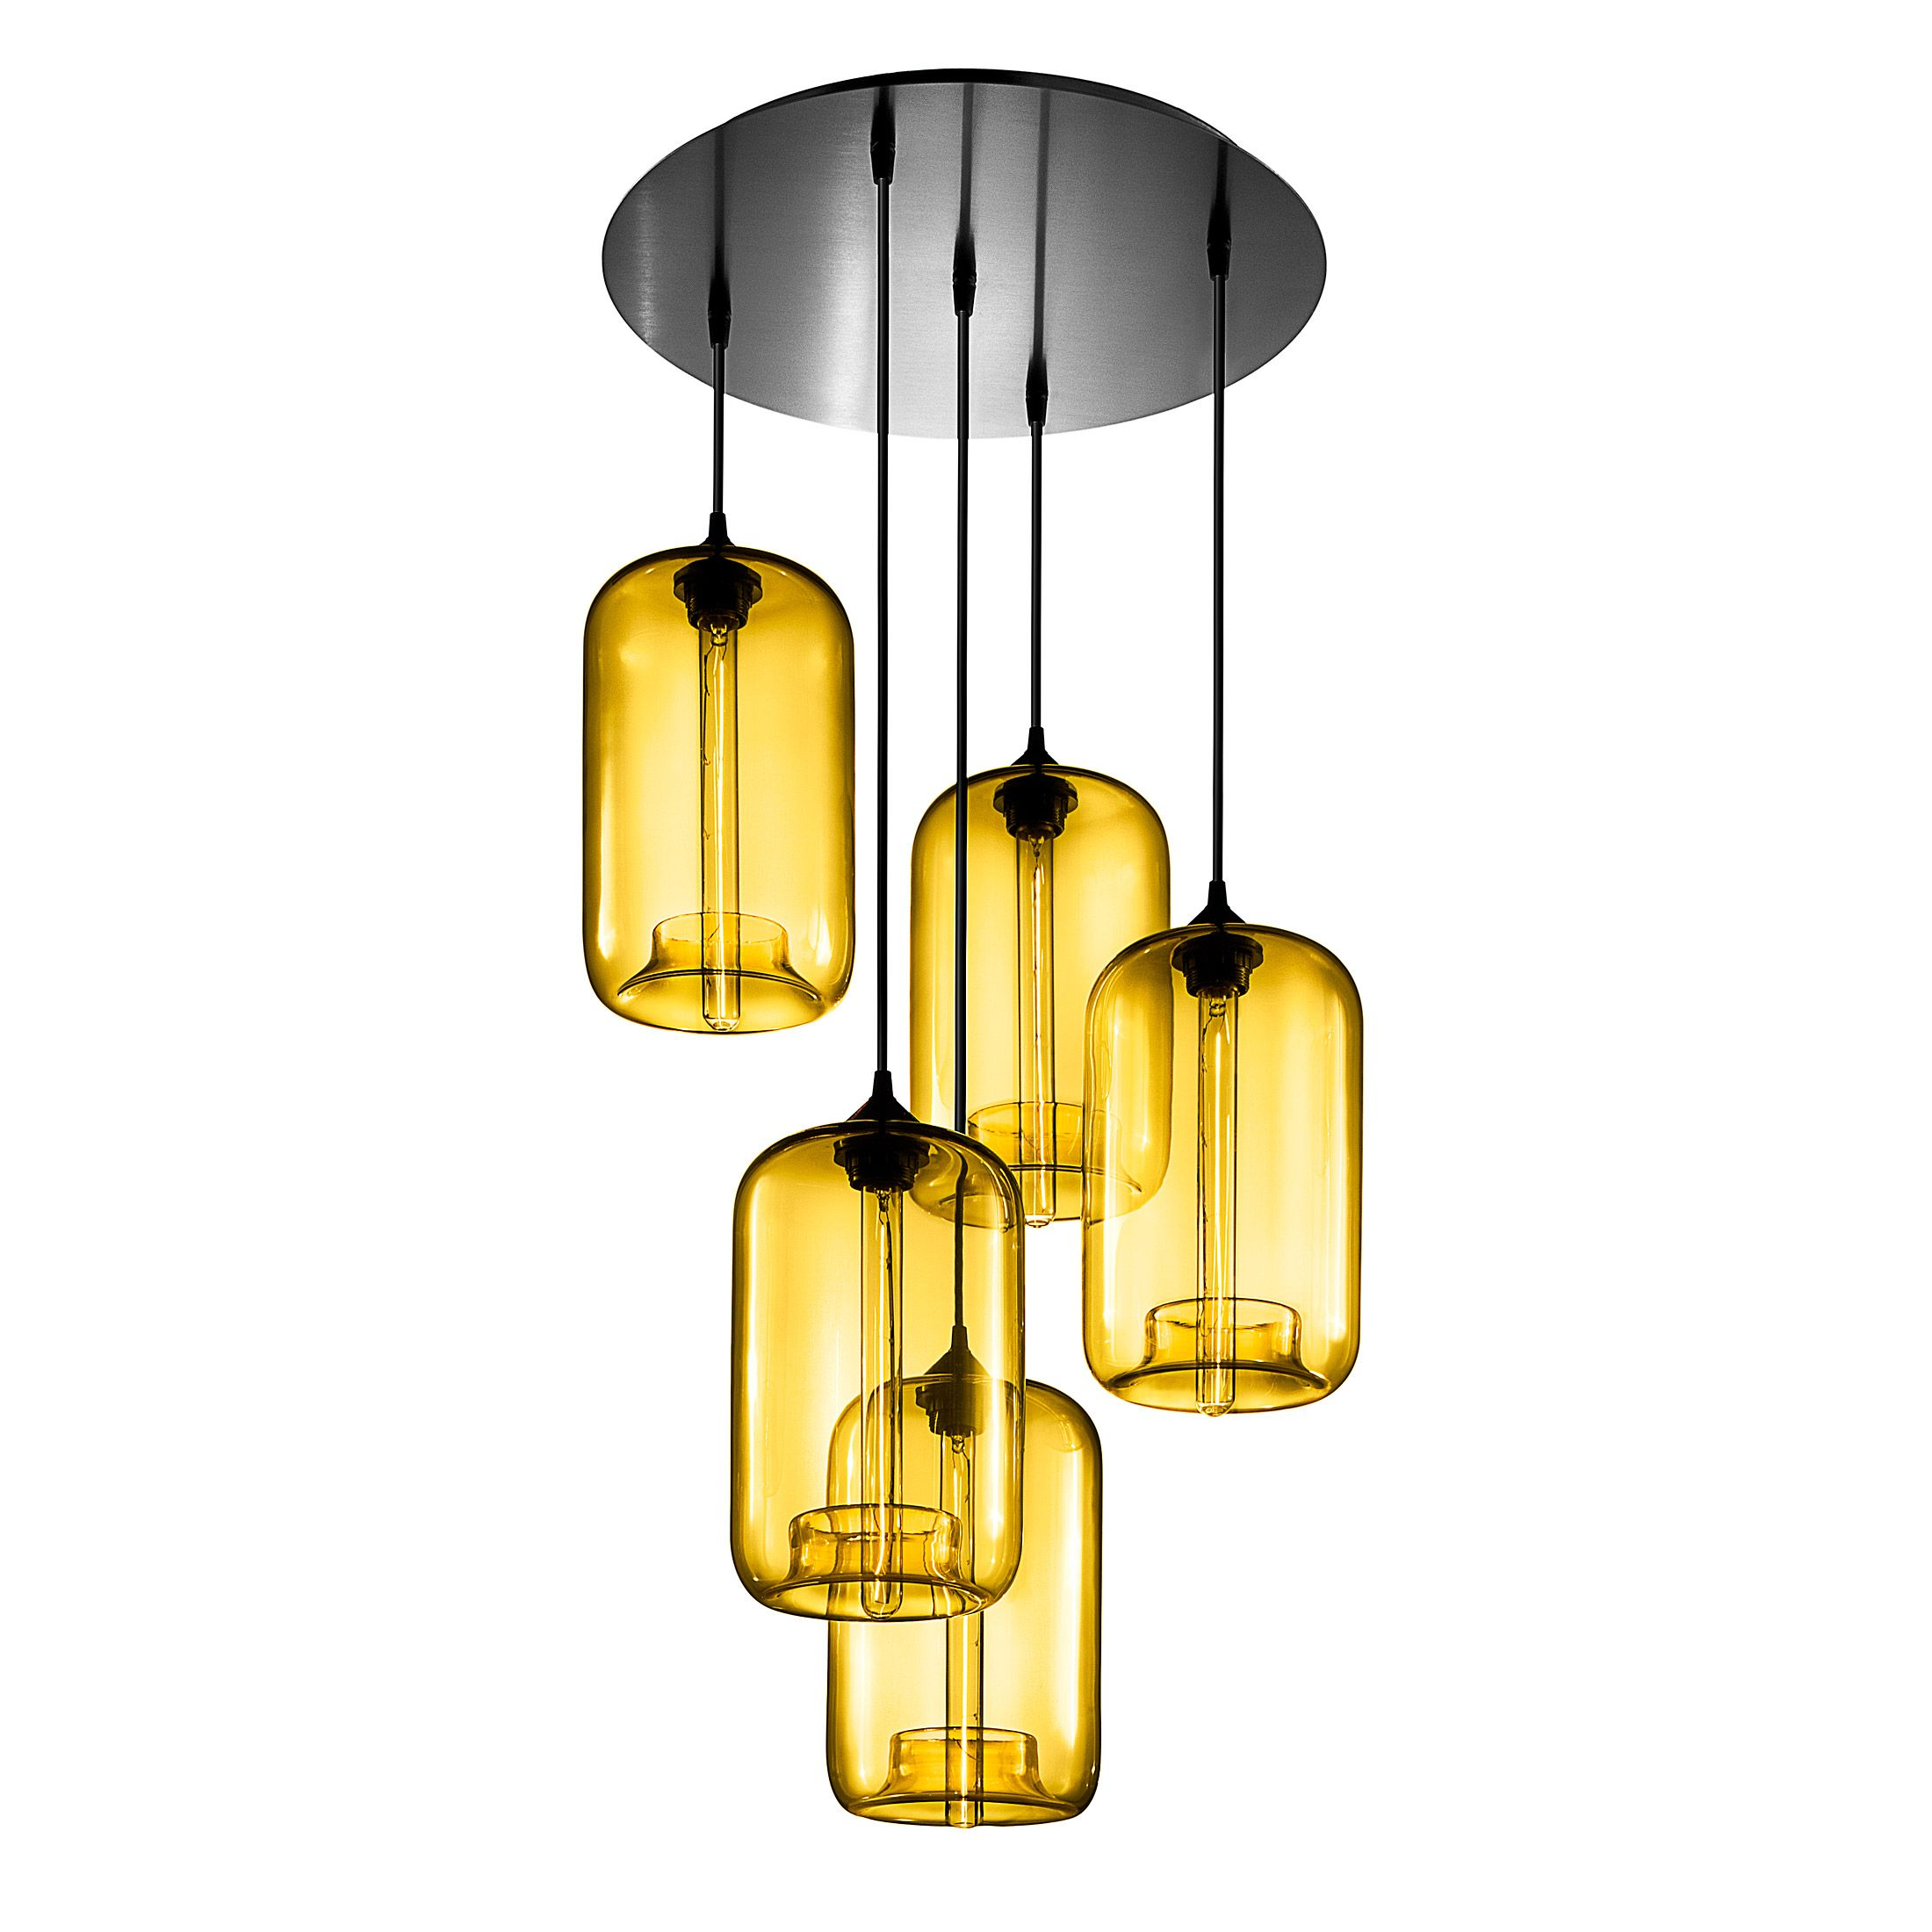 Awesome Chandelier Lights Not Working Pictures - Chandelier ...